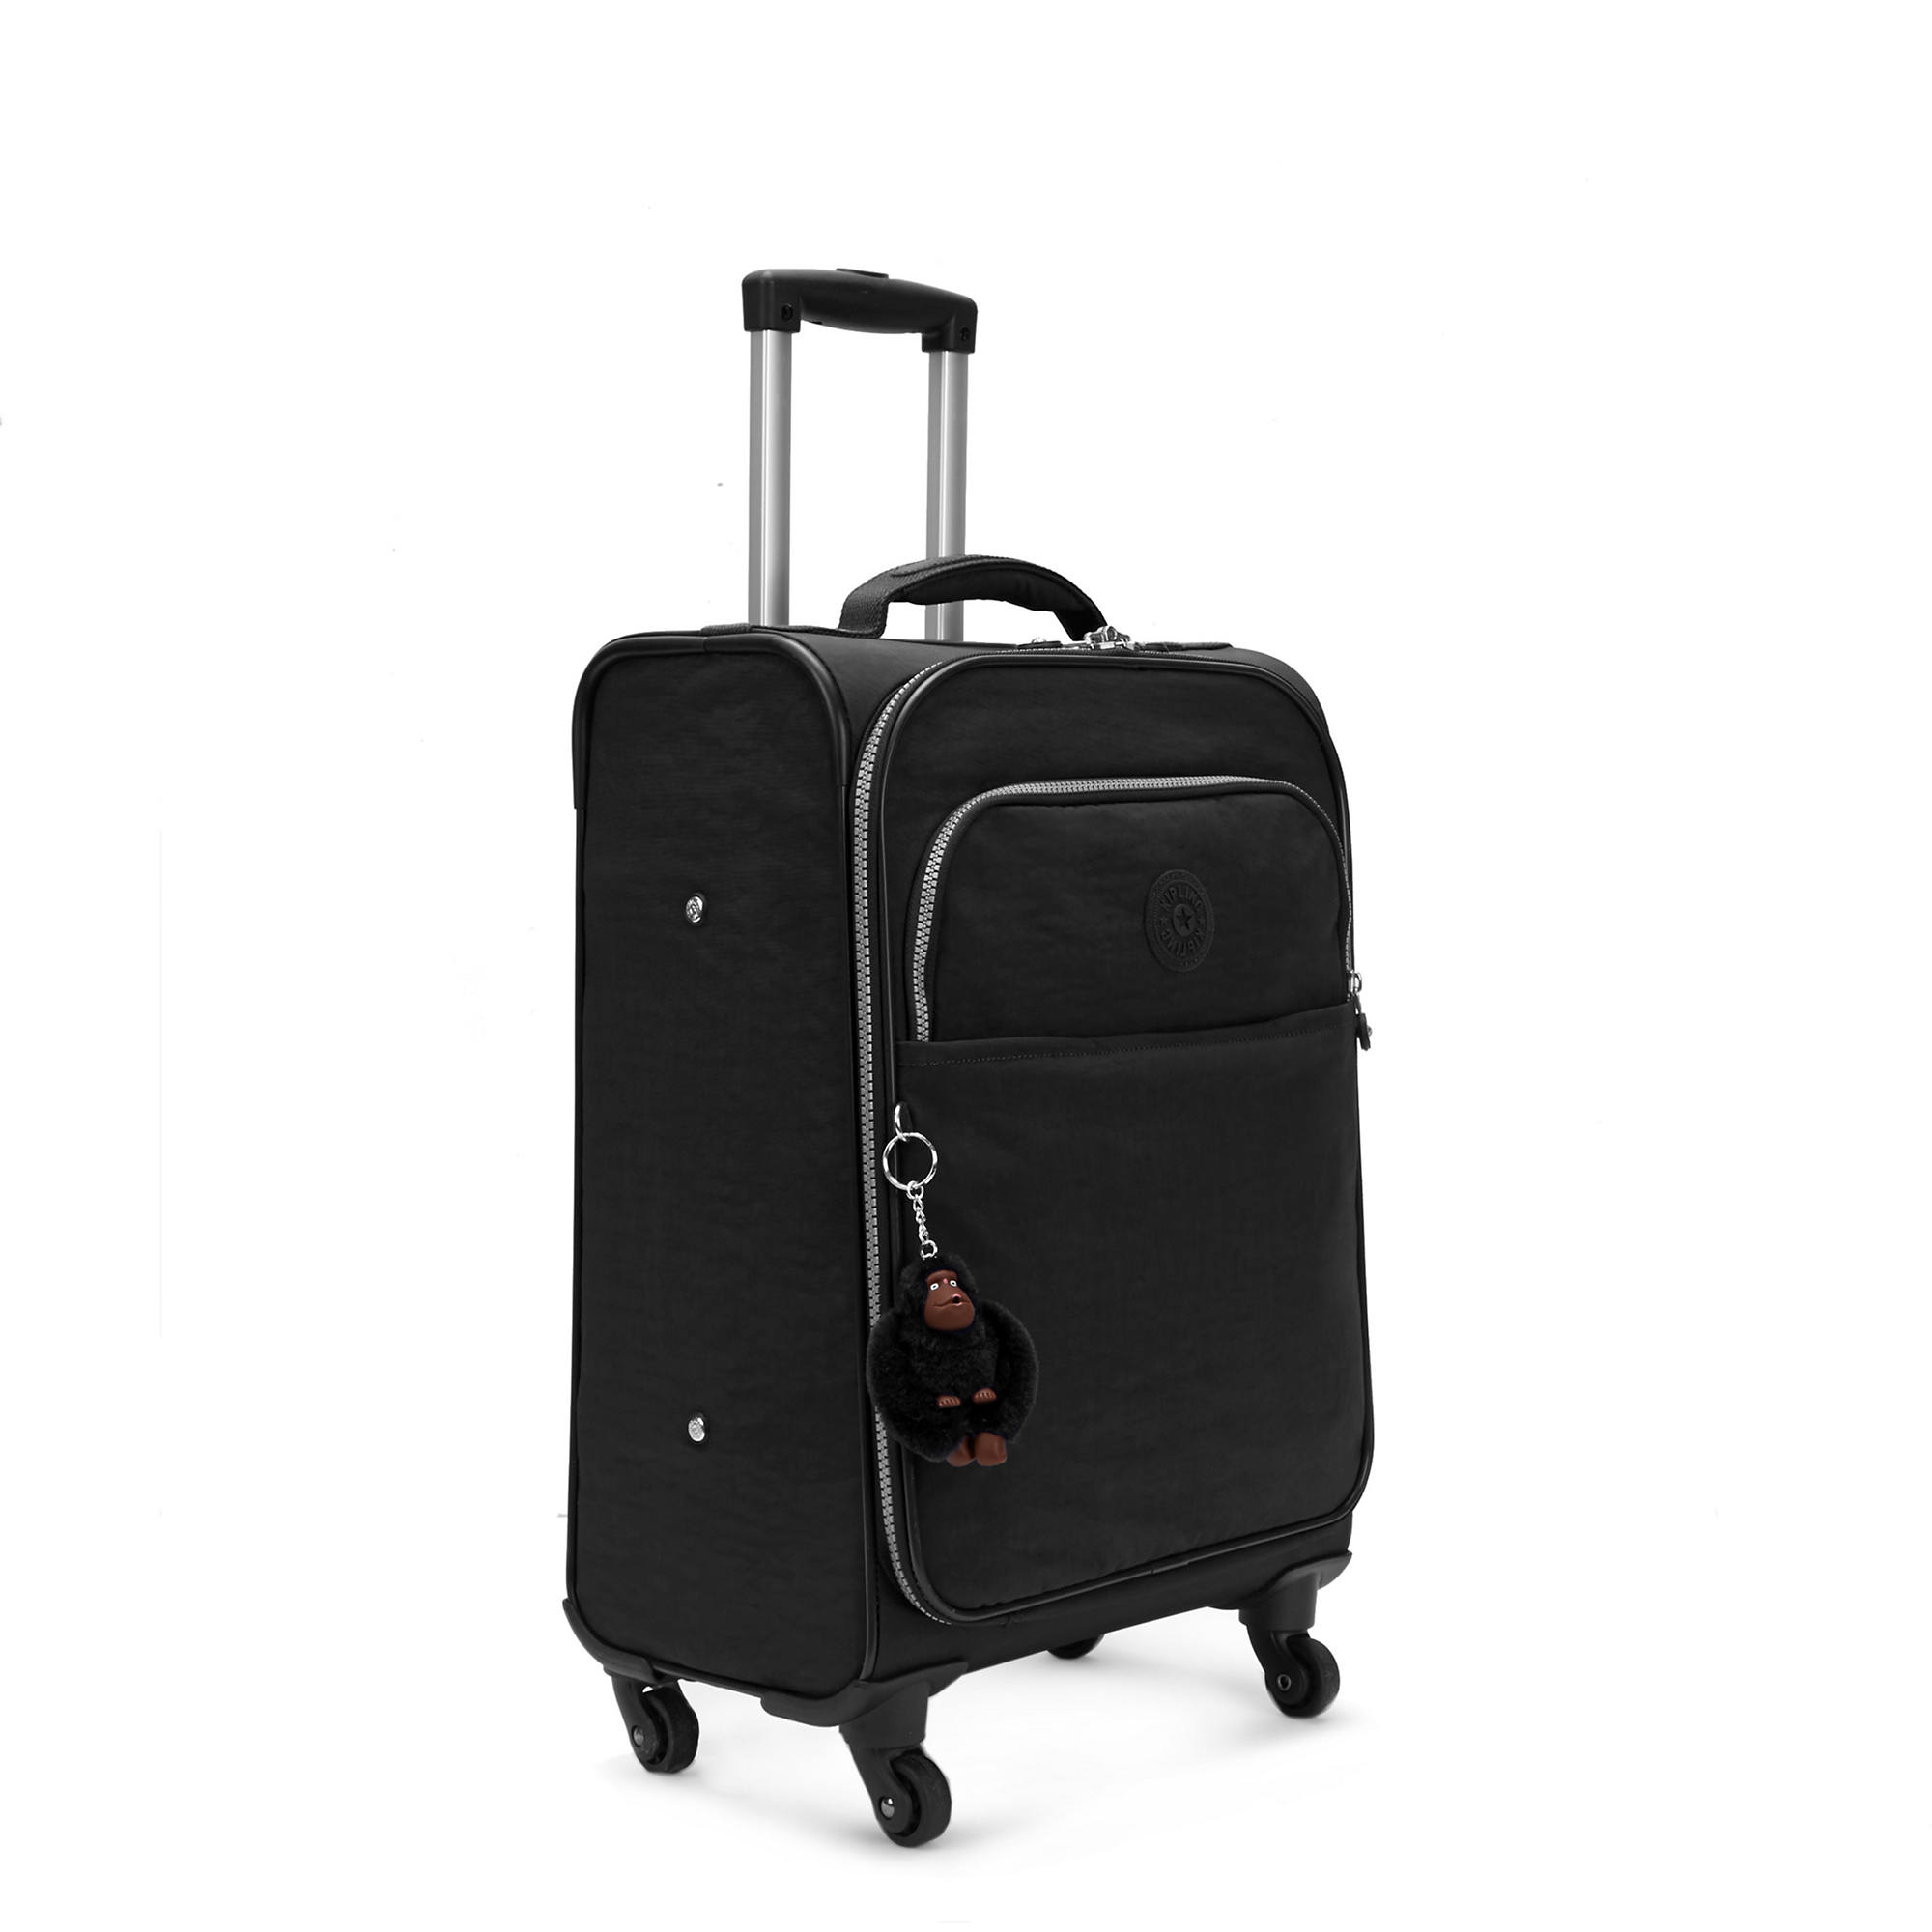 7b3e7ec36f Kipling-Parker-Small-Carry-On-Rolling-Luggage